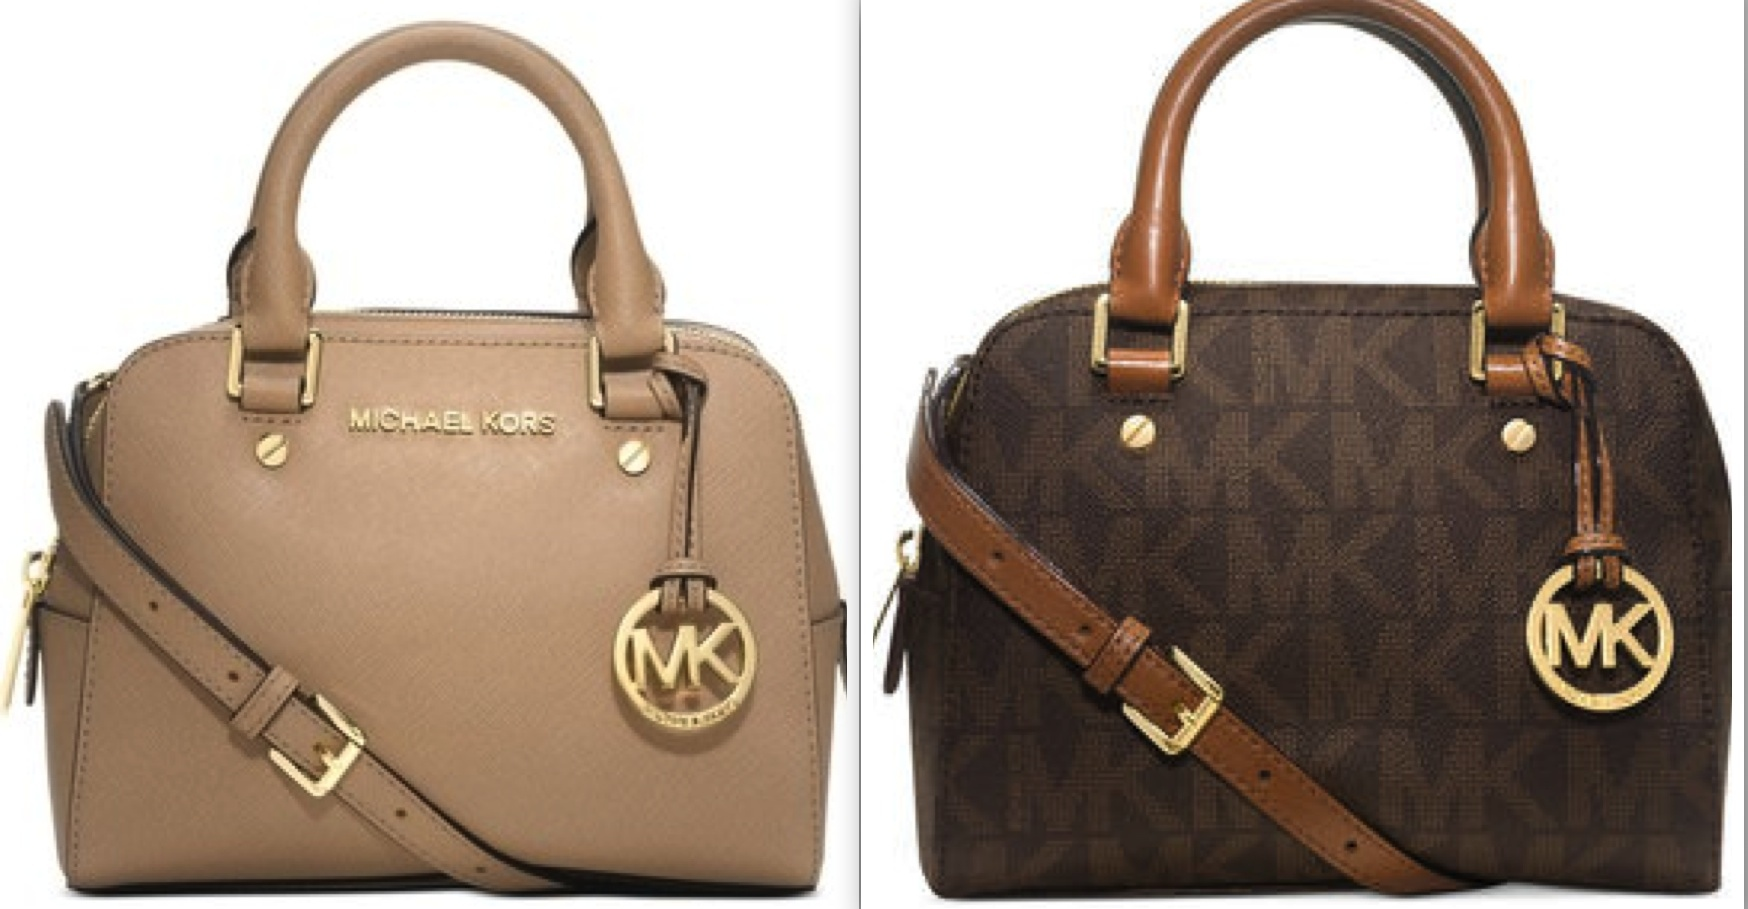 Where Can I Buy Authentic Michael Kors Handbags?